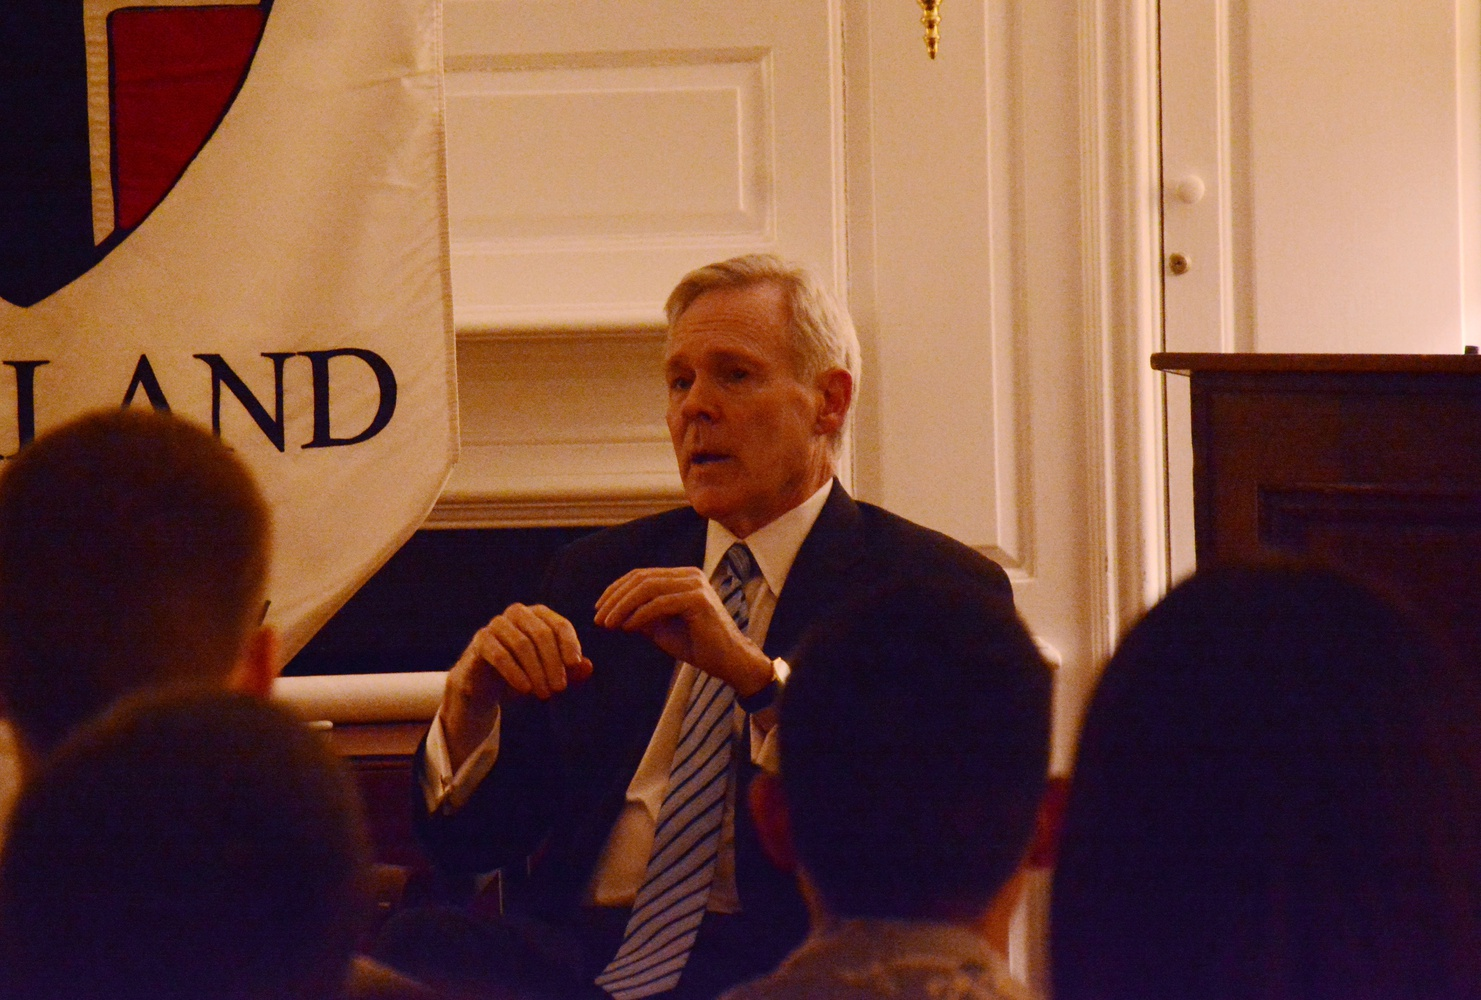 Raymond E. Mabus, former Secretary of the Navy, talks about the future of U.S. foreign policy Tuesday night in the Kirkland Senior Common Room. Mabus is an IOP Visiting Fellow.